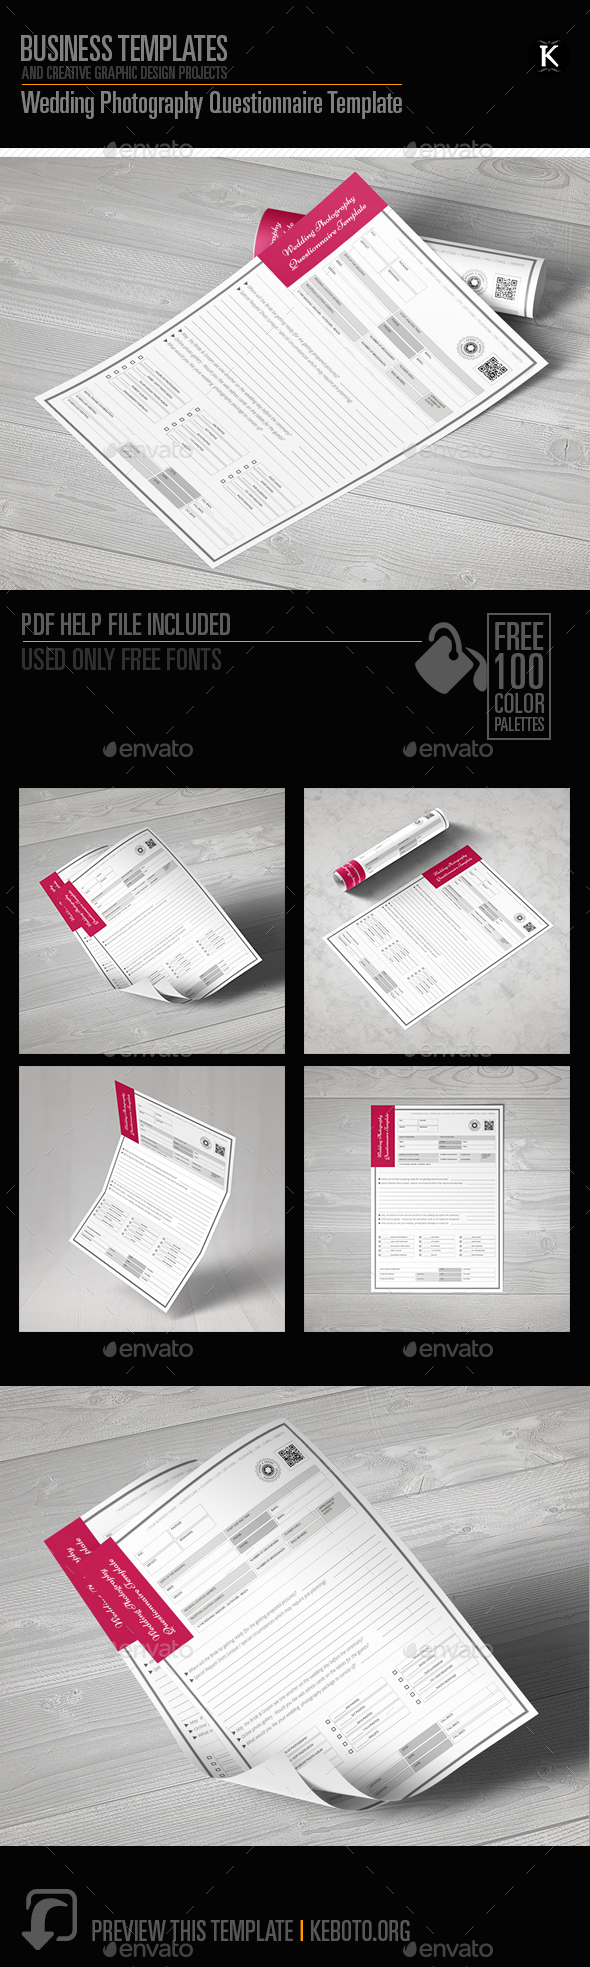 Wedding Photography Questionnaire Template by Keboto | GraphicRiver